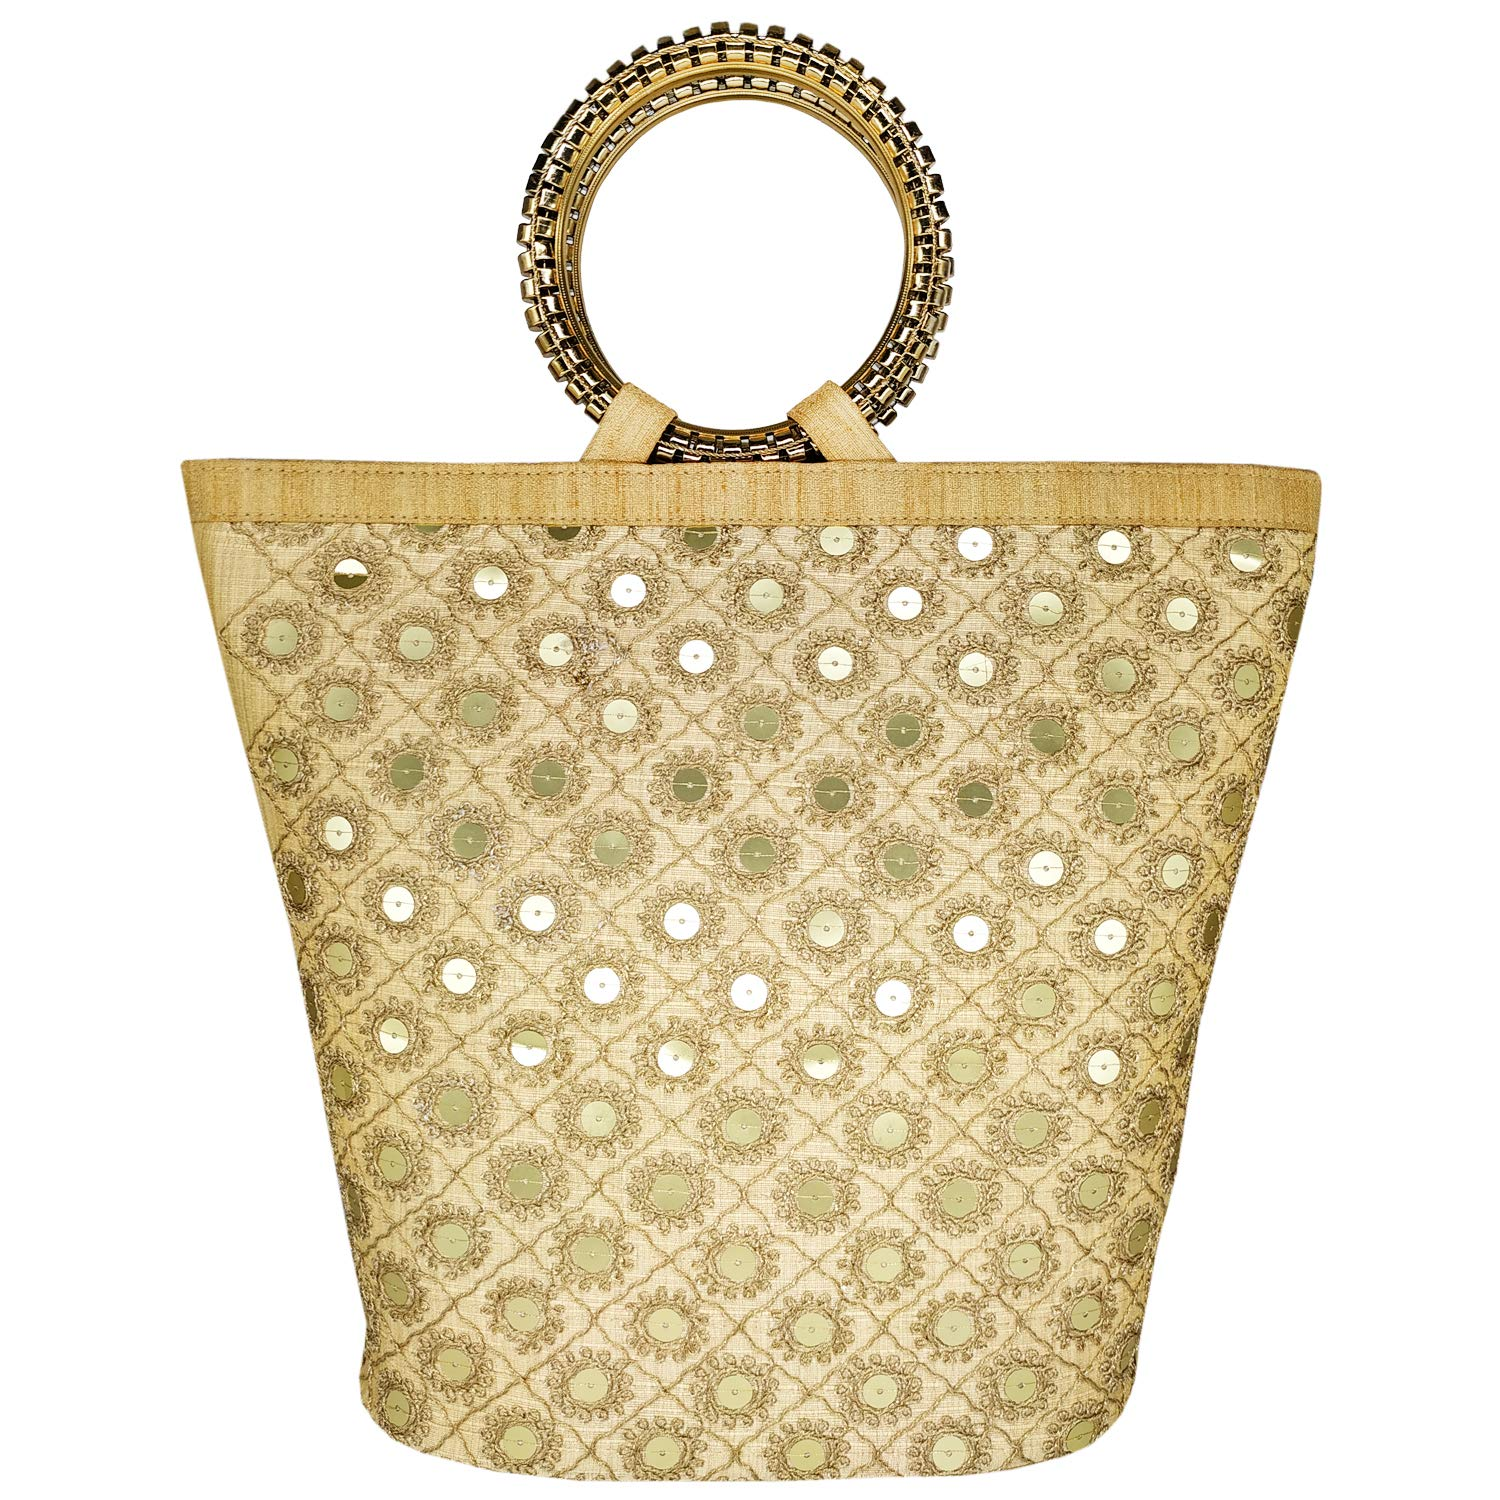 Ethnic Raw Silk Handbags Hand Held Bag - Bagaholics Gift